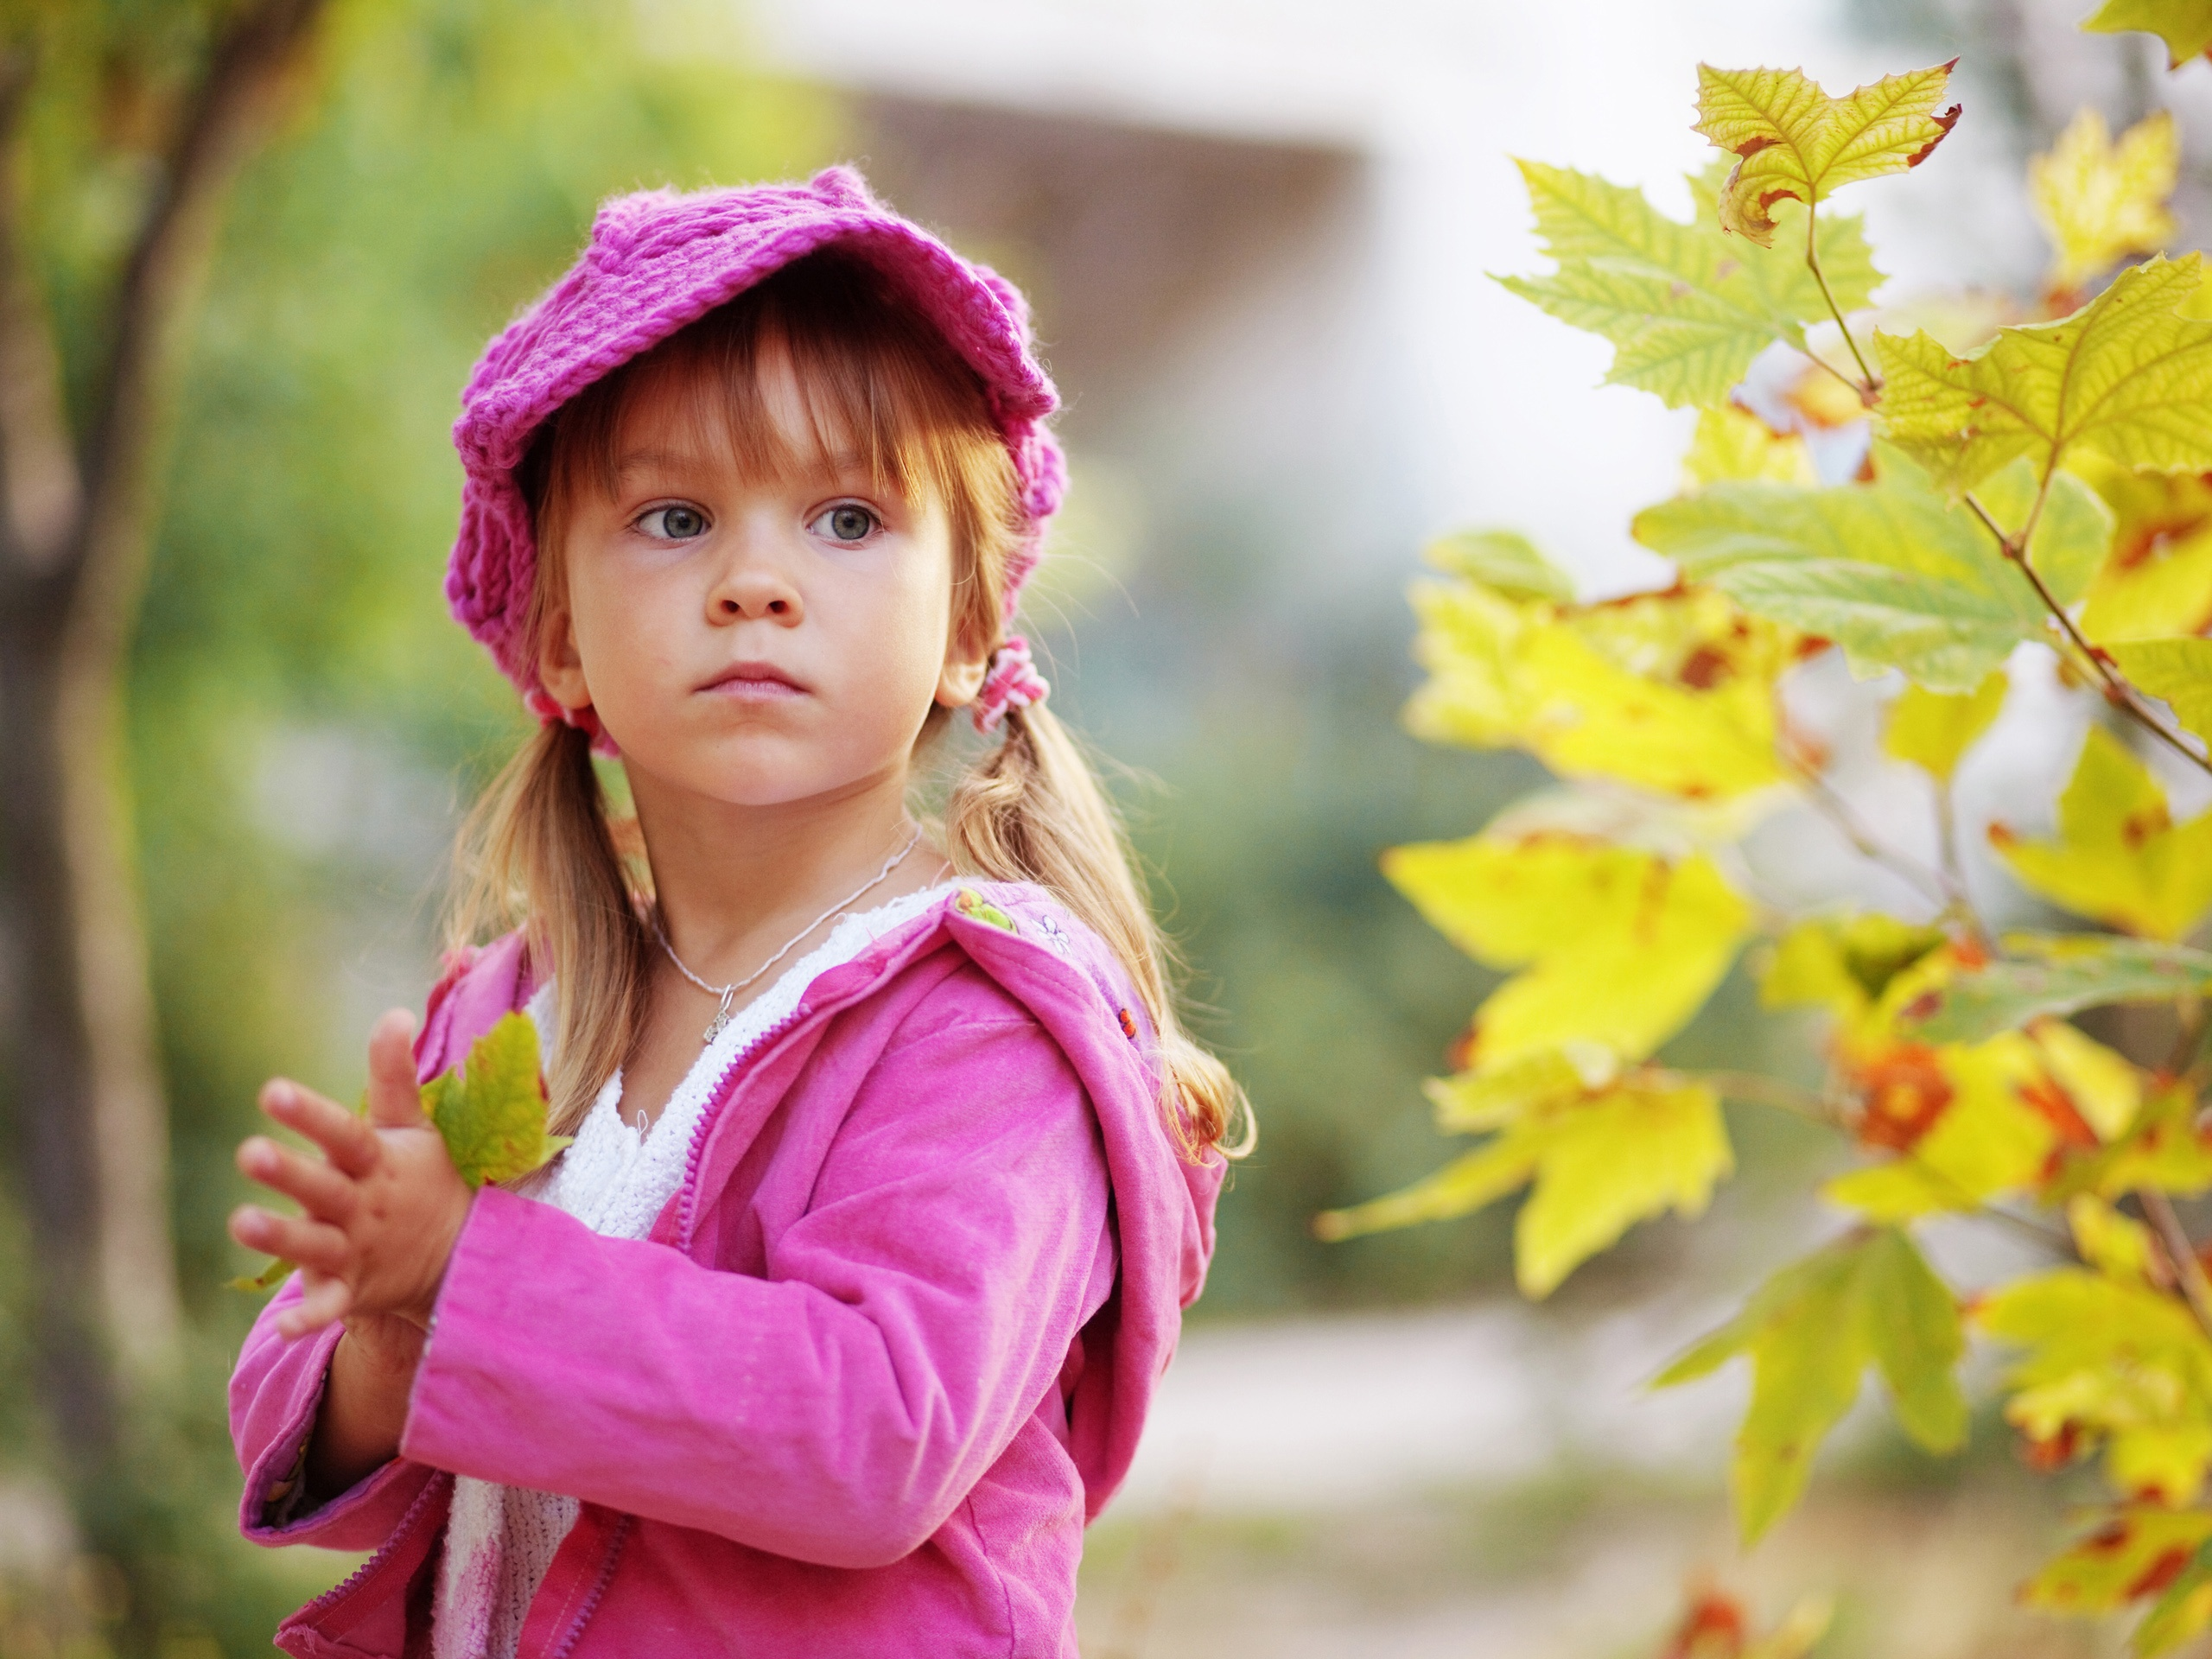 Small Girl Love Wallpaper : Download Wallpaper 2560x1920 cute little girl holding a maple leaf HD Background